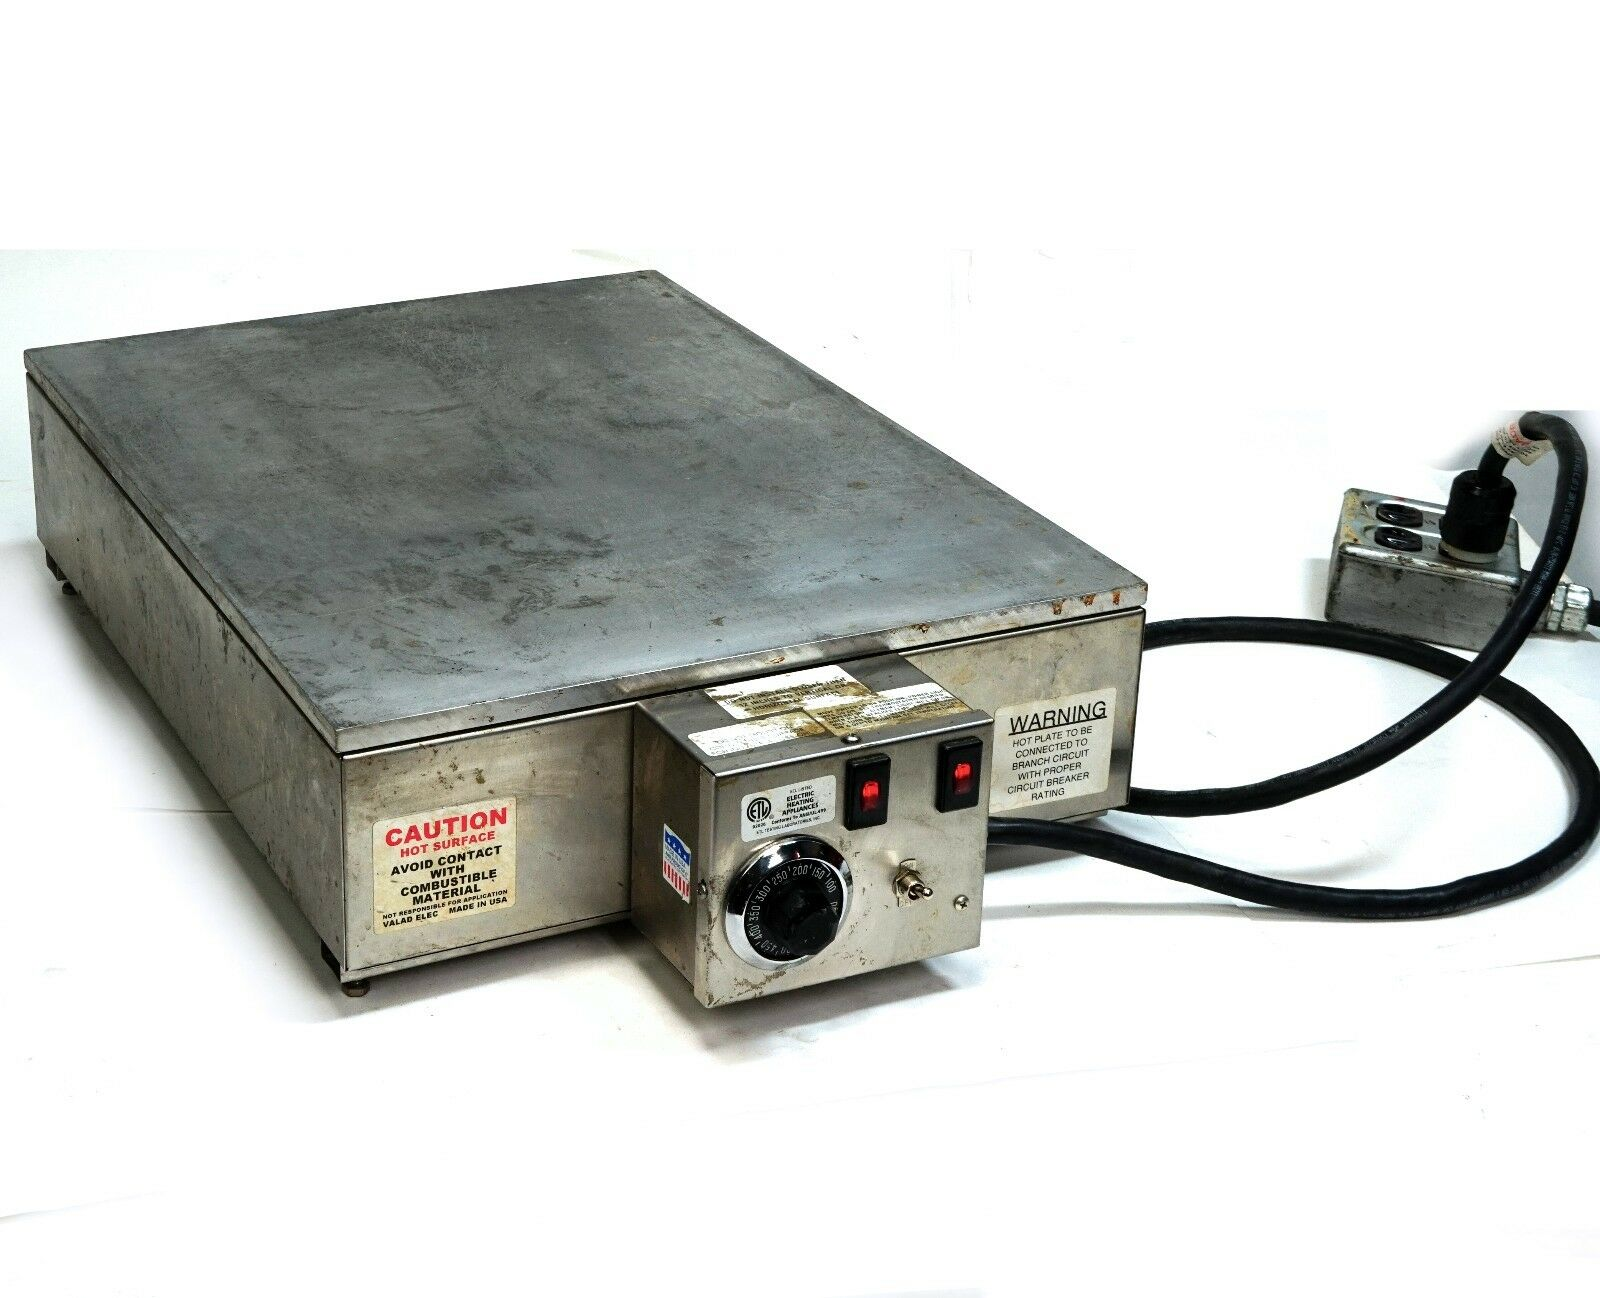 valad electrical, lab hot plate